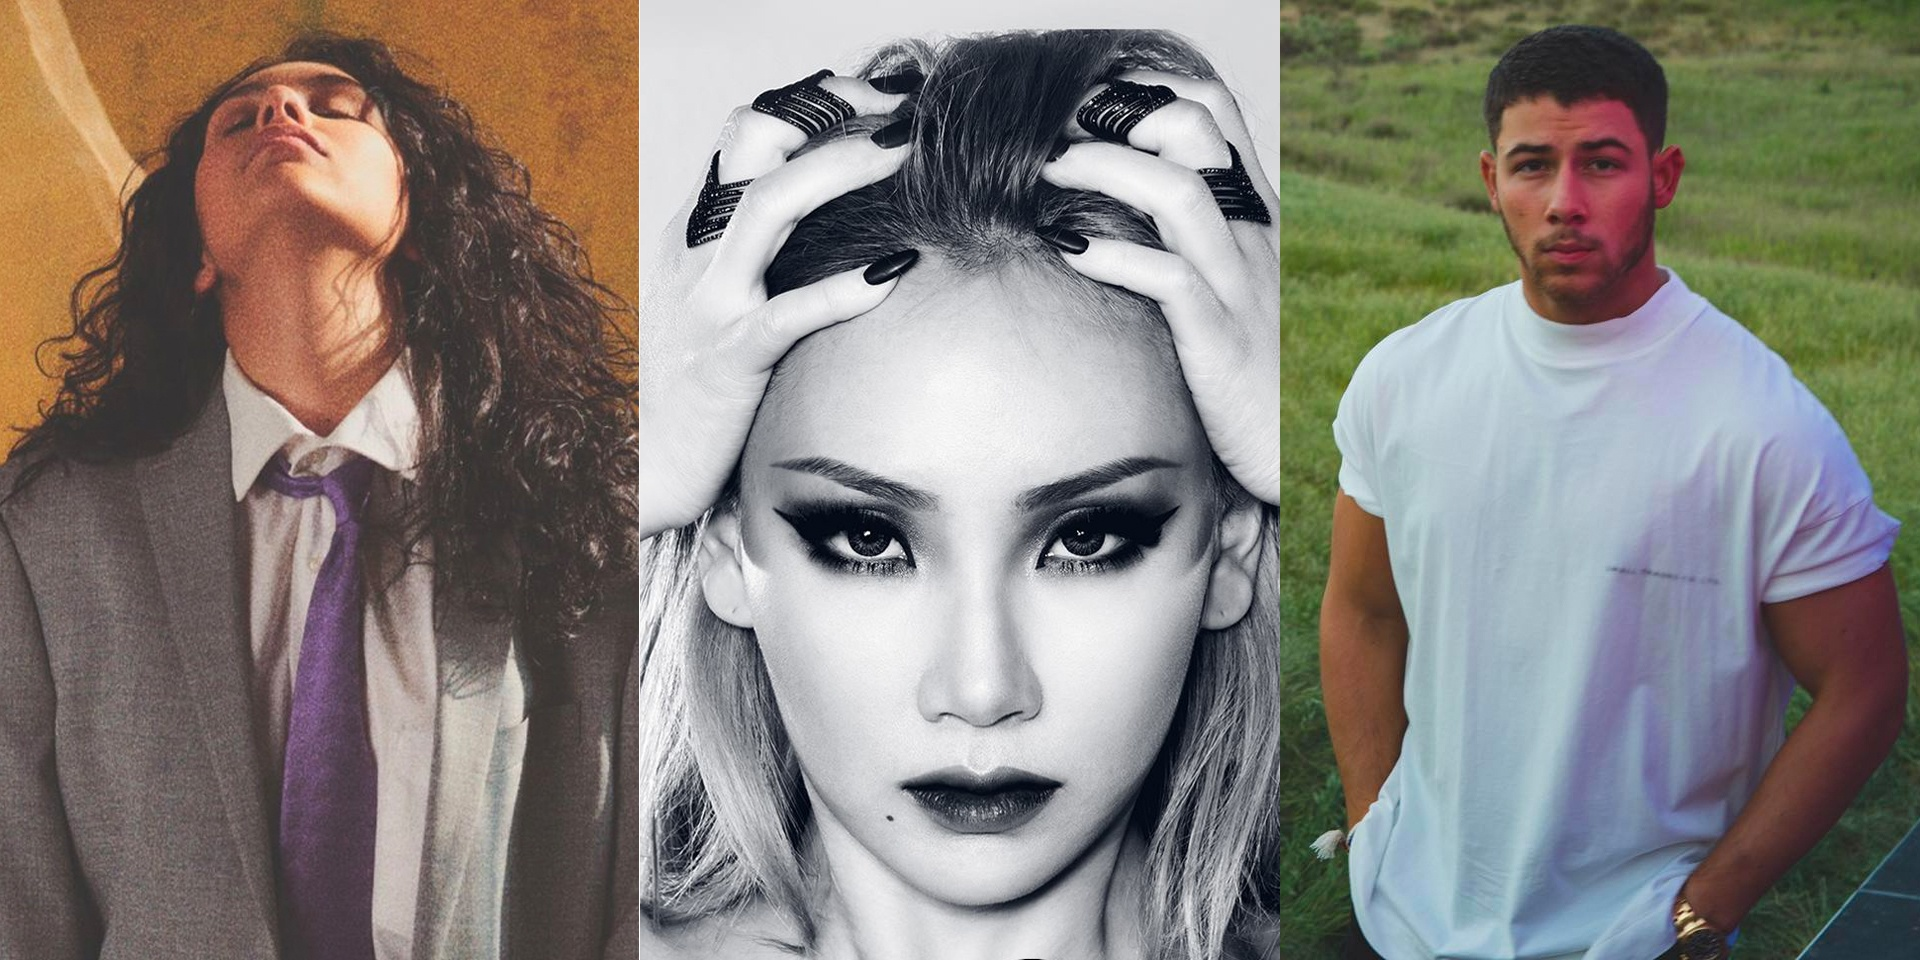 A change of plans for Hyperplay: fans will be able to catch CL, Nick Jonas, Alessia Cara etc for free